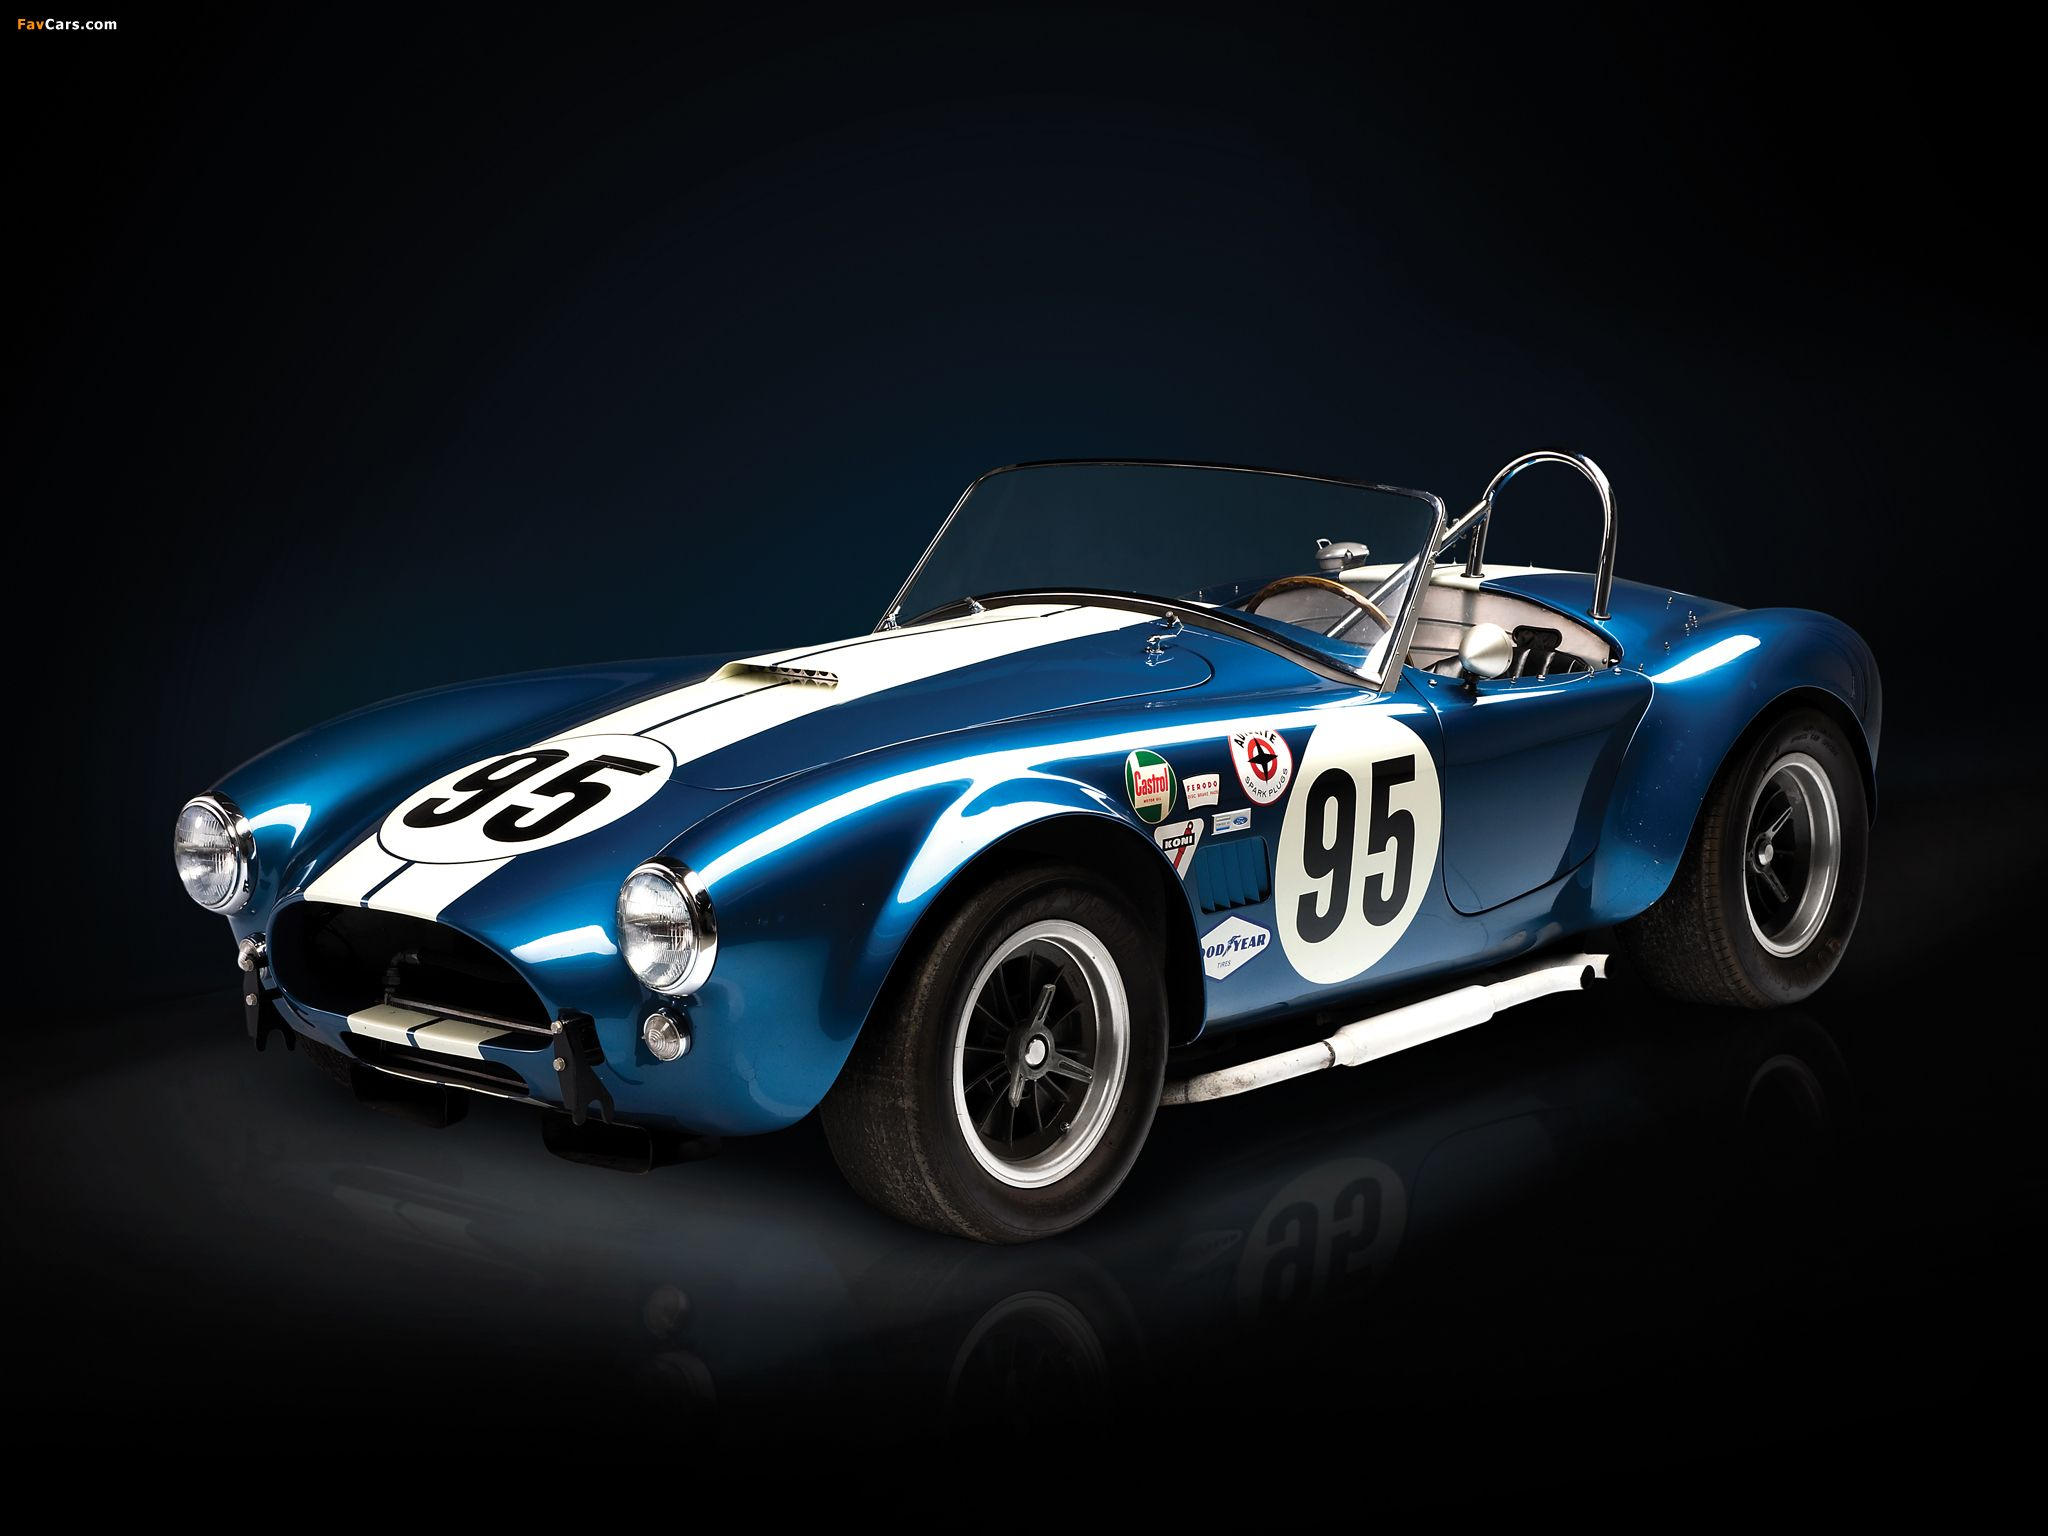 Sports Cars | Things I Like | Pinterest | Sports cars, Cars and Aircraft